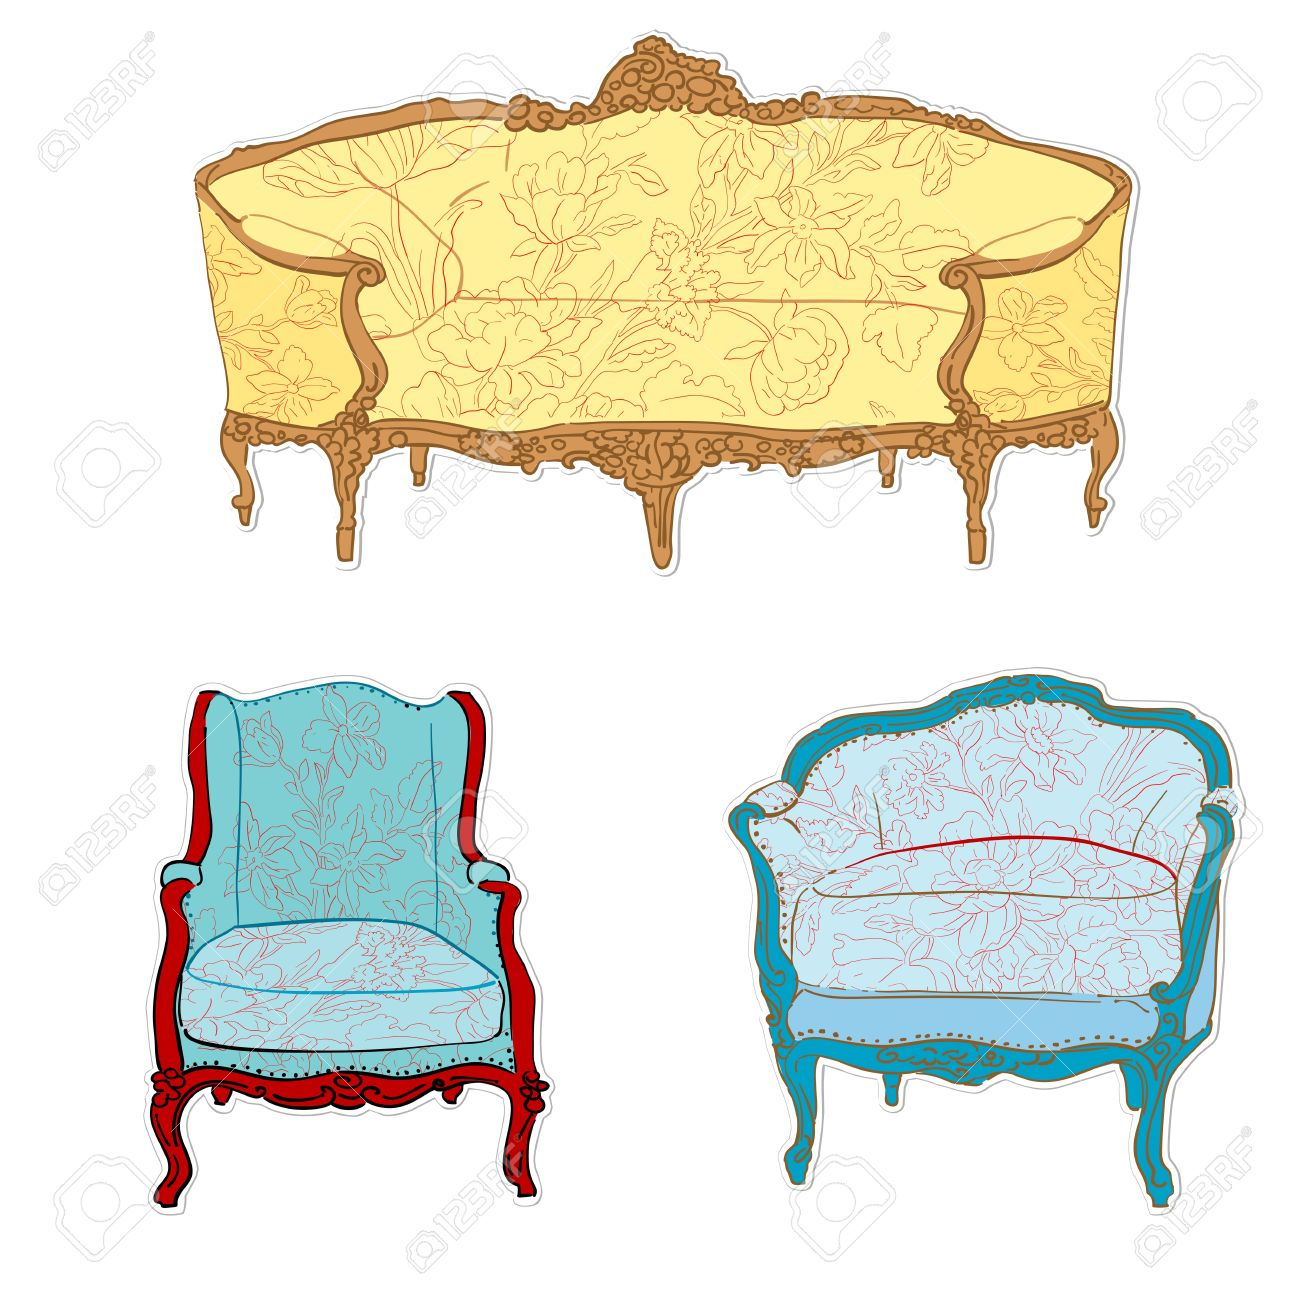 antique rococo sofa, chair and armchair with floral tapestry stickers isolated on white Stock Vector - 12488843